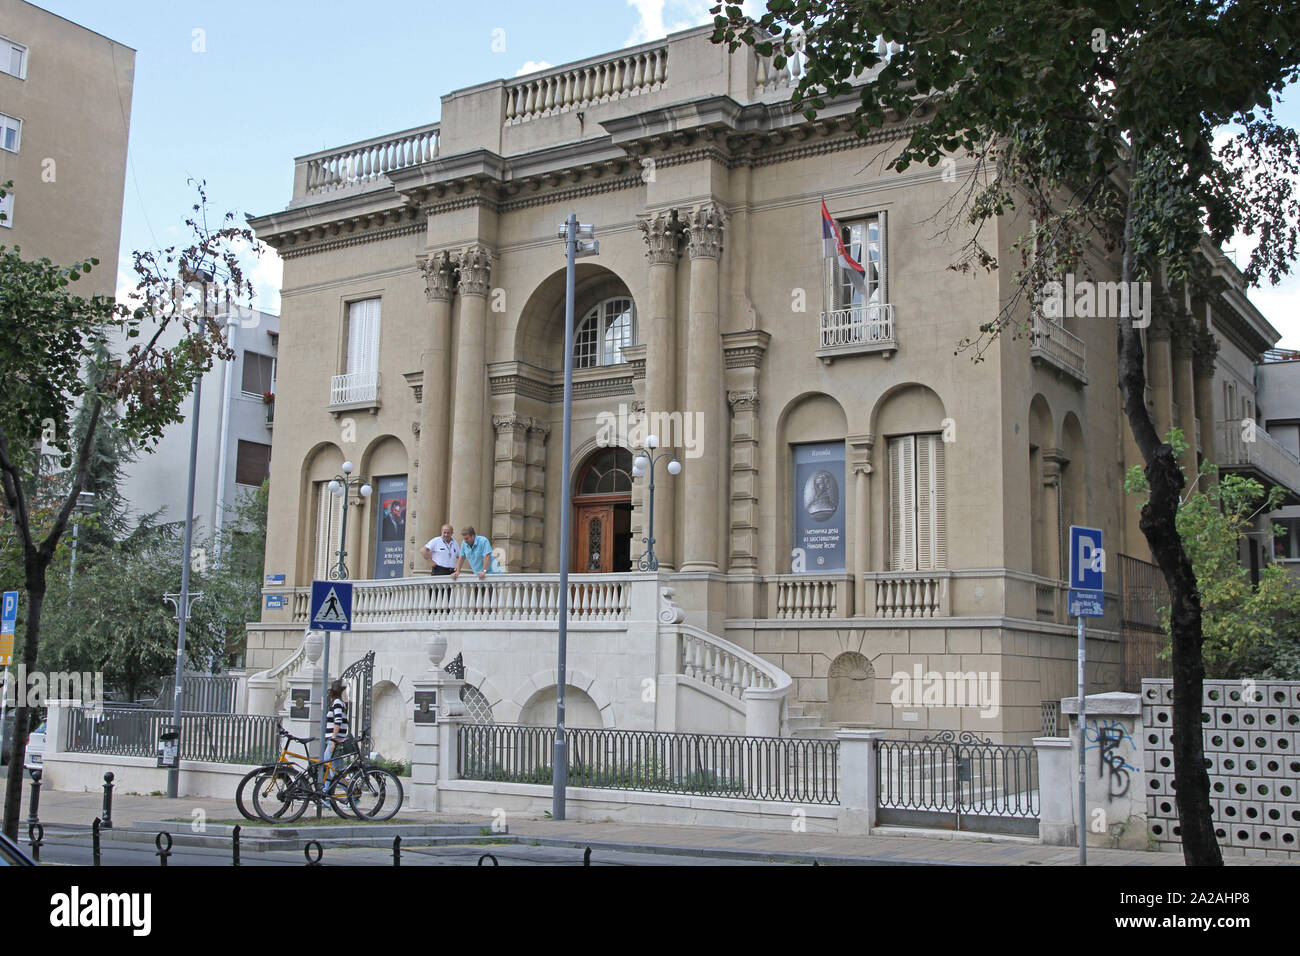 Three quarter face view of the front facade of the Nikola Tesla Museum, Central Belgrade, Serbia. Stock Photo